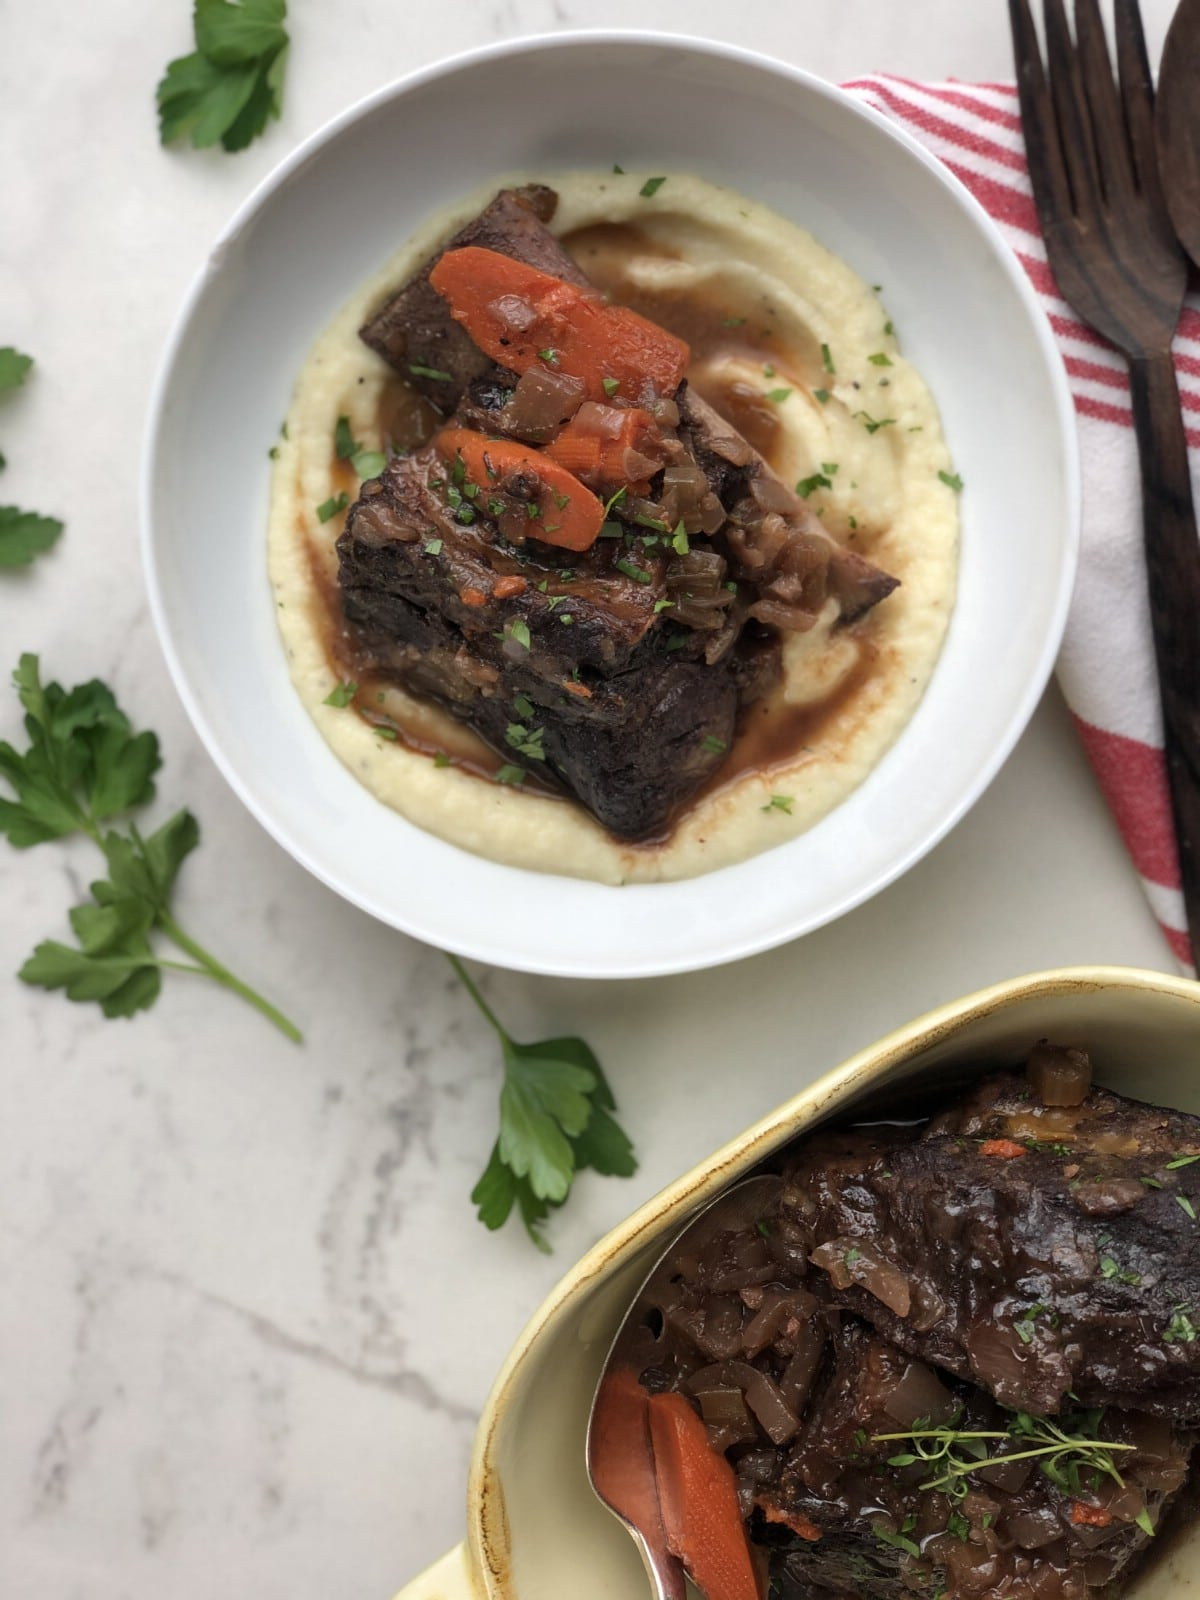 Serving dish of braised short ribs